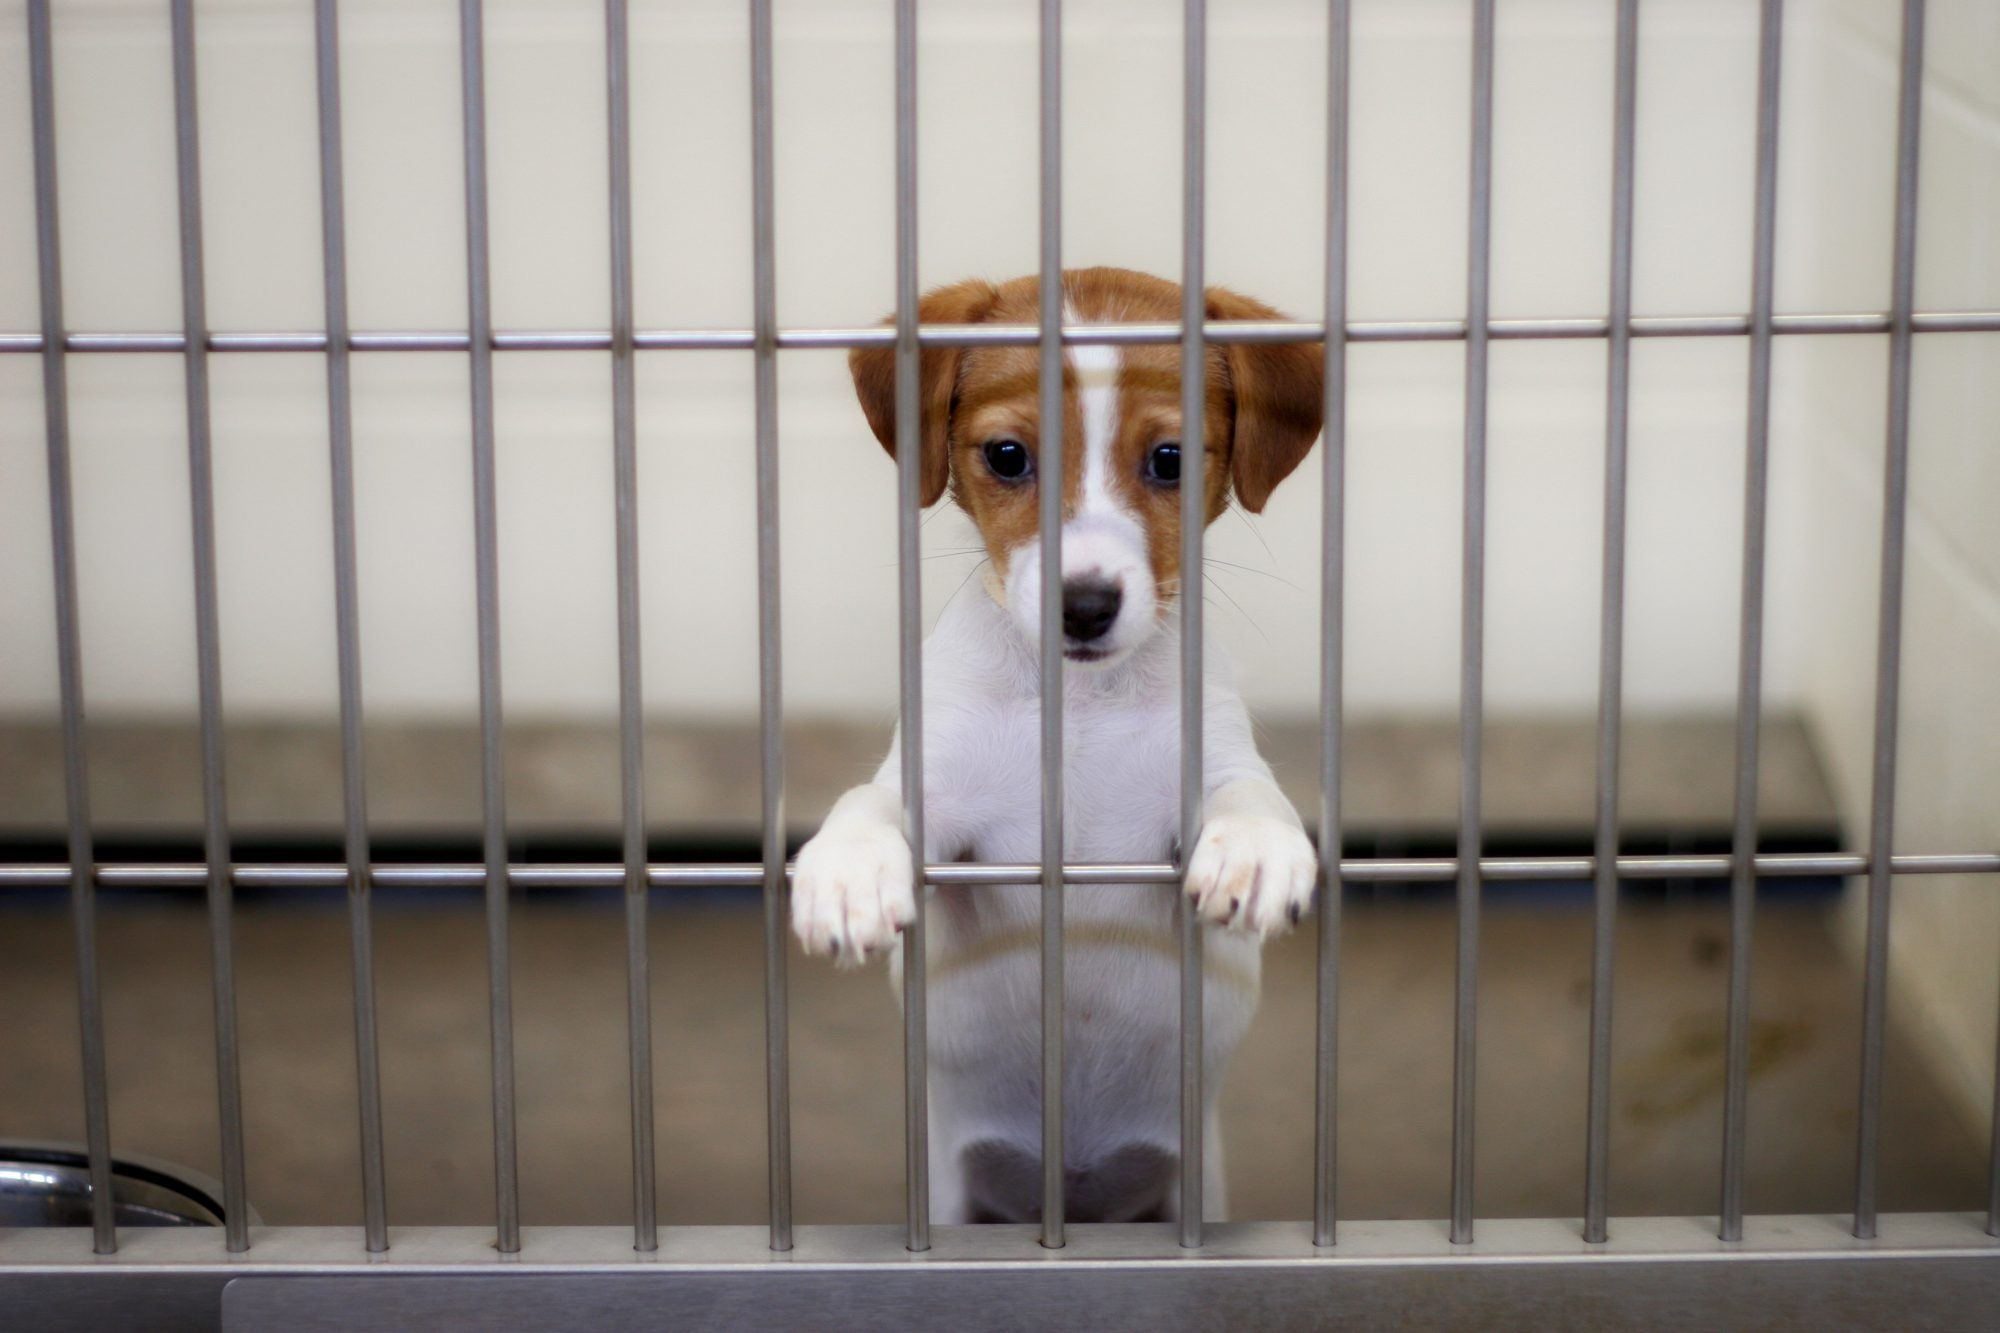 puppy behind bars